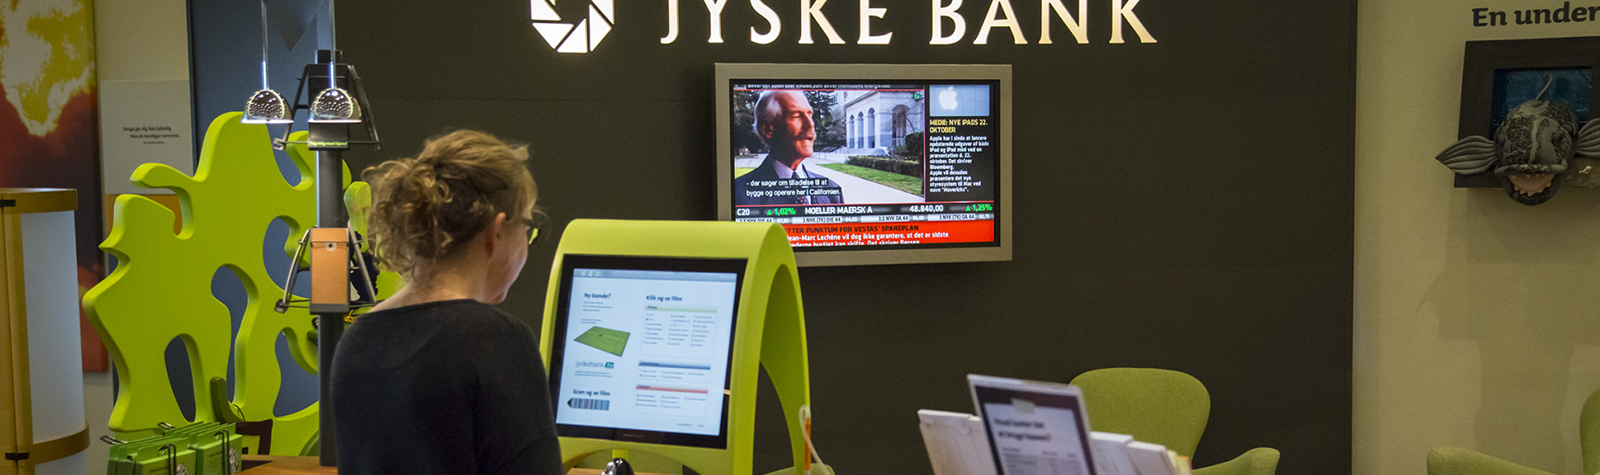 Supporting live TV at Jyske Bank